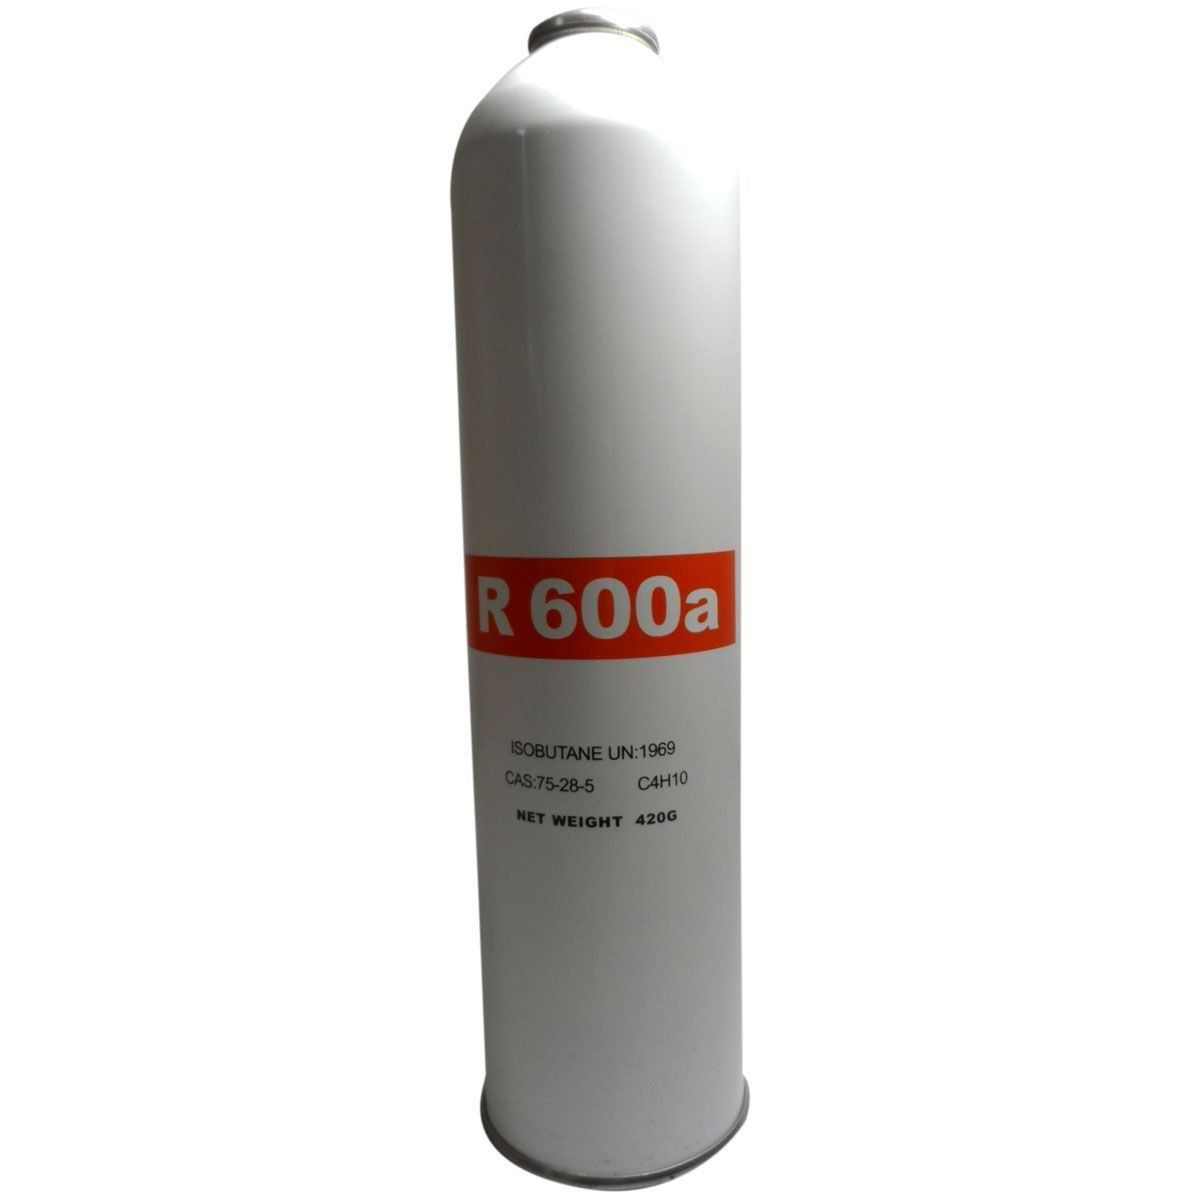 GÁS R600A LATA 420G INFLAMAVEL